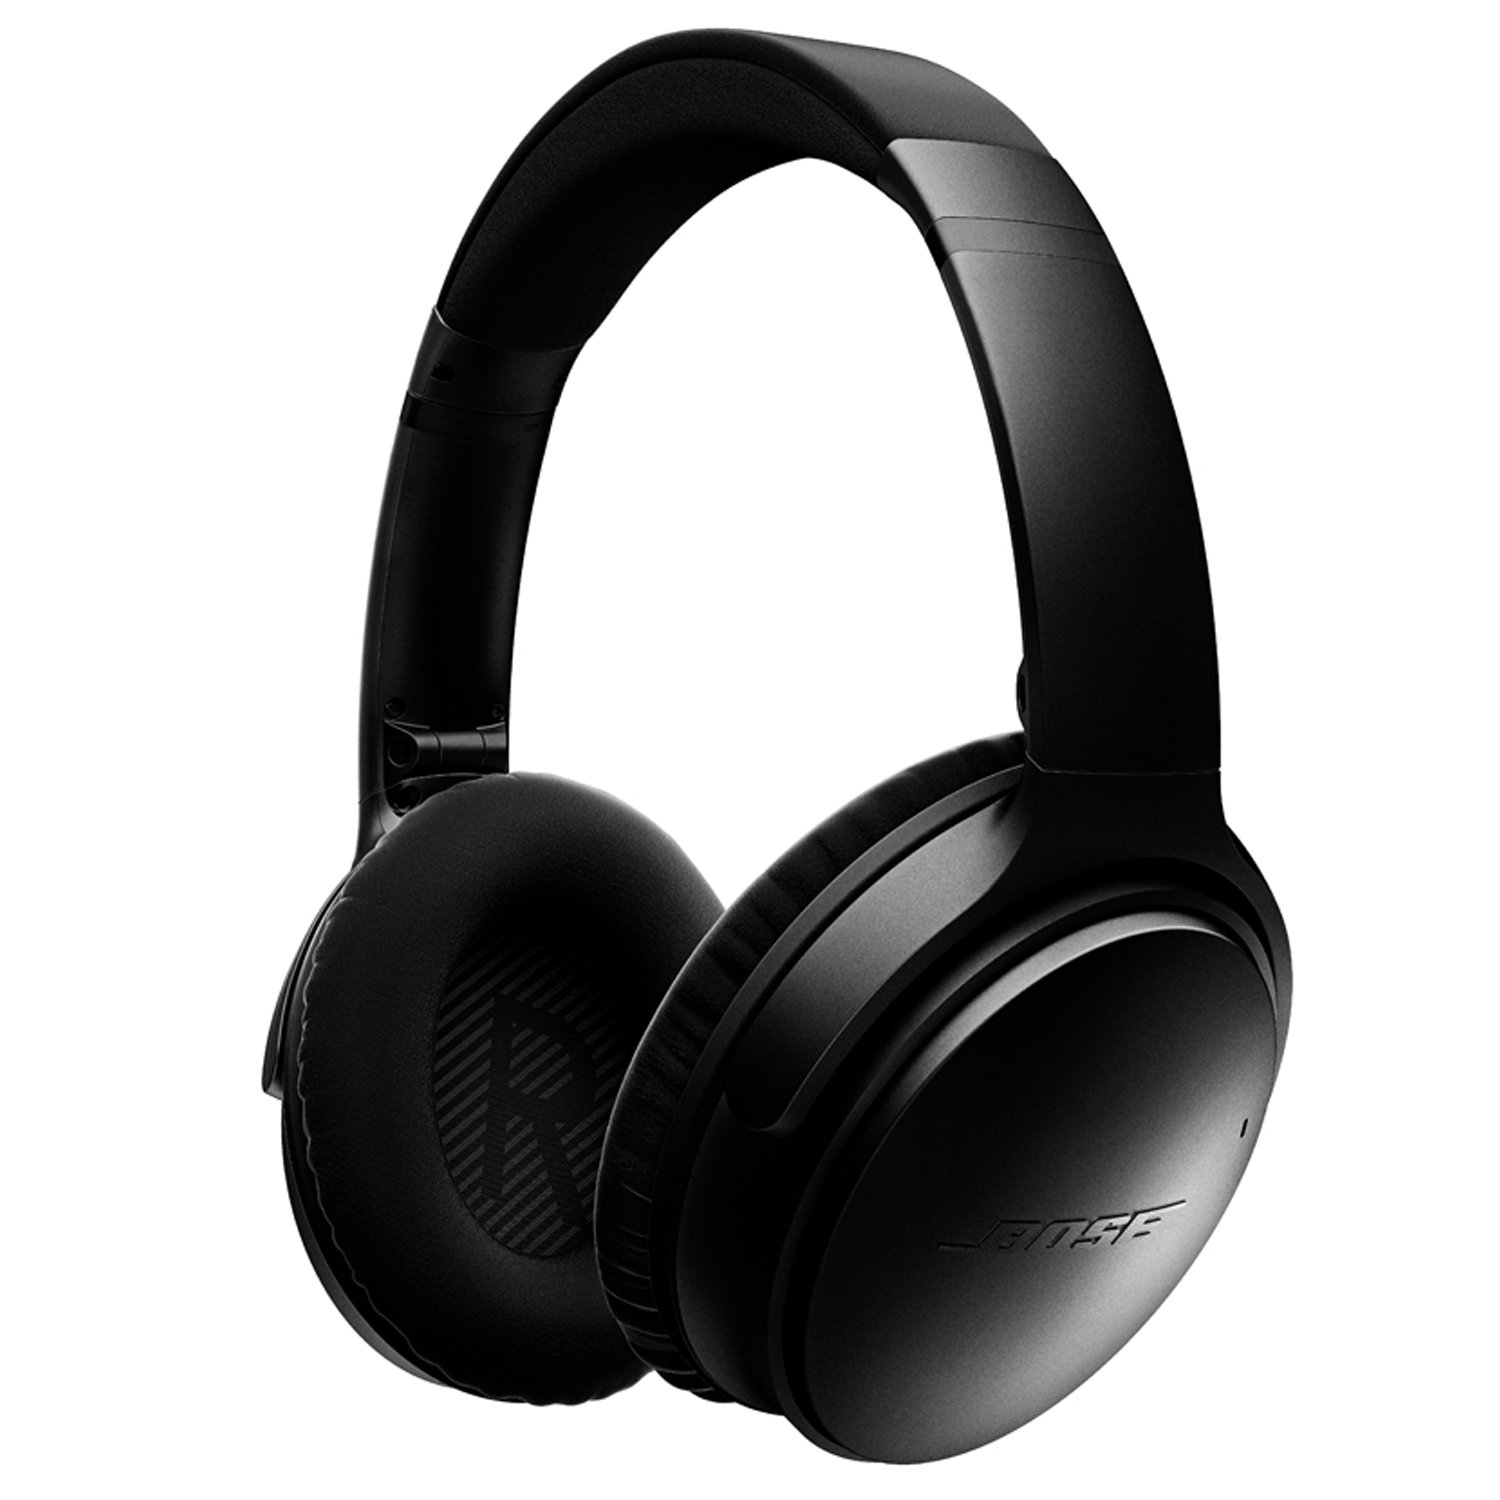 Bose Noise Cancelling Wireless headphones, type: Over Ear